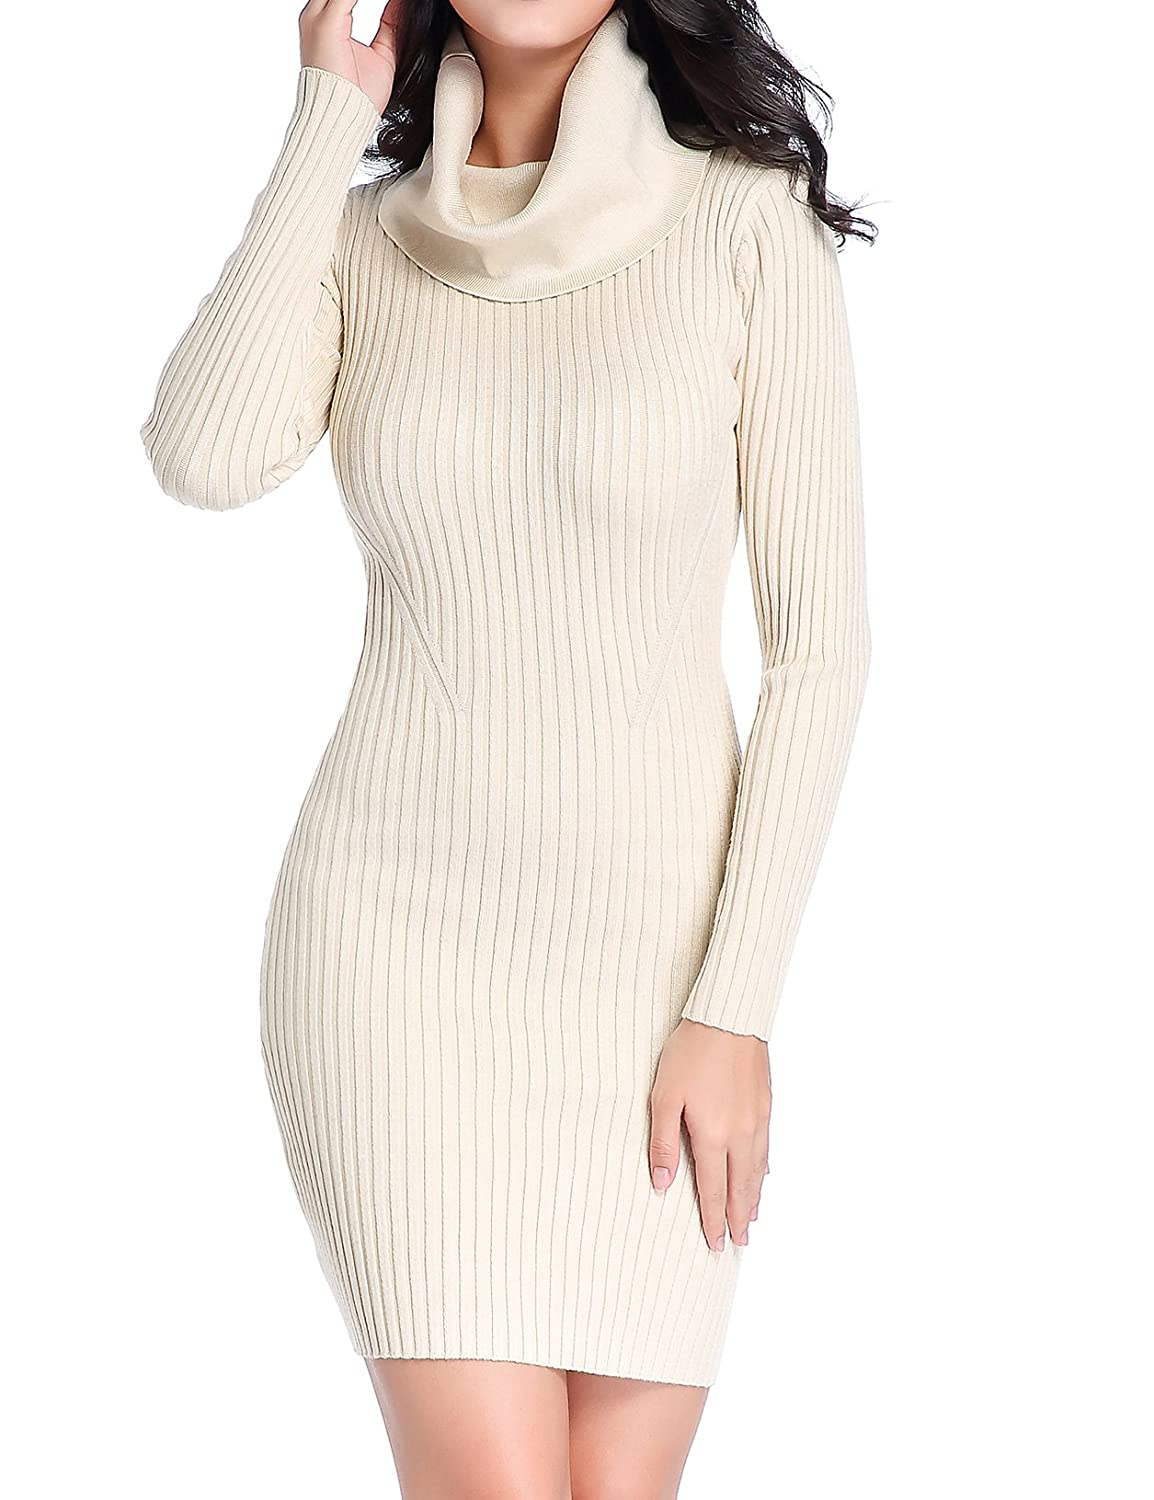 Oatmeal colored sweater dress